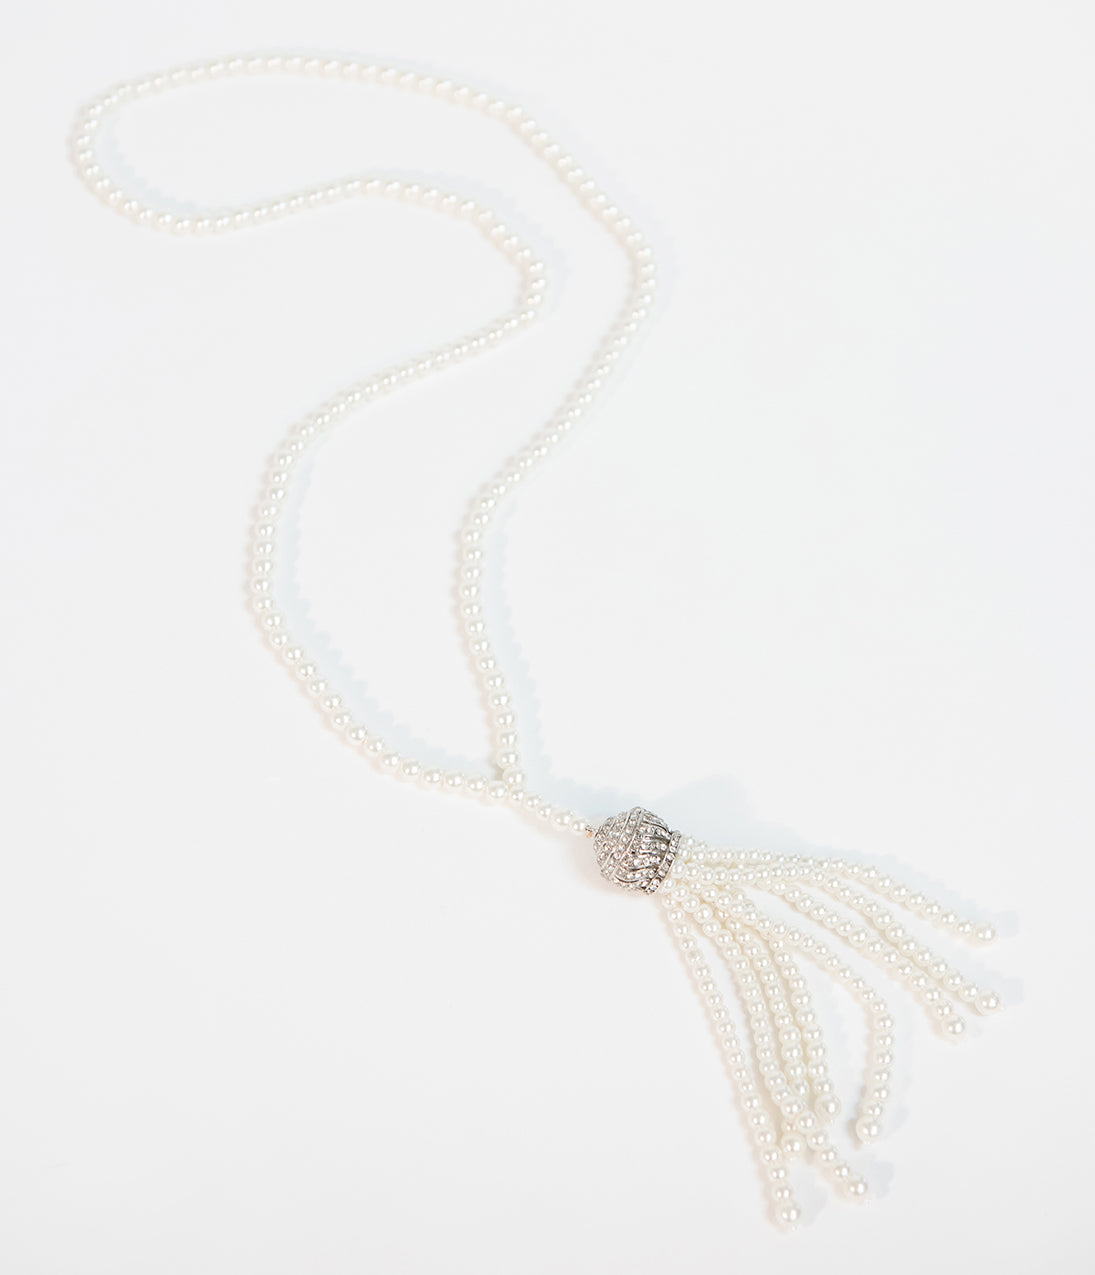 1960s Jewelry Styles and Trends to Wear Unique Vintage Deco Style Ivory Pearl  Silver Tassel Necklace $24.00 AT vintagedancer.com